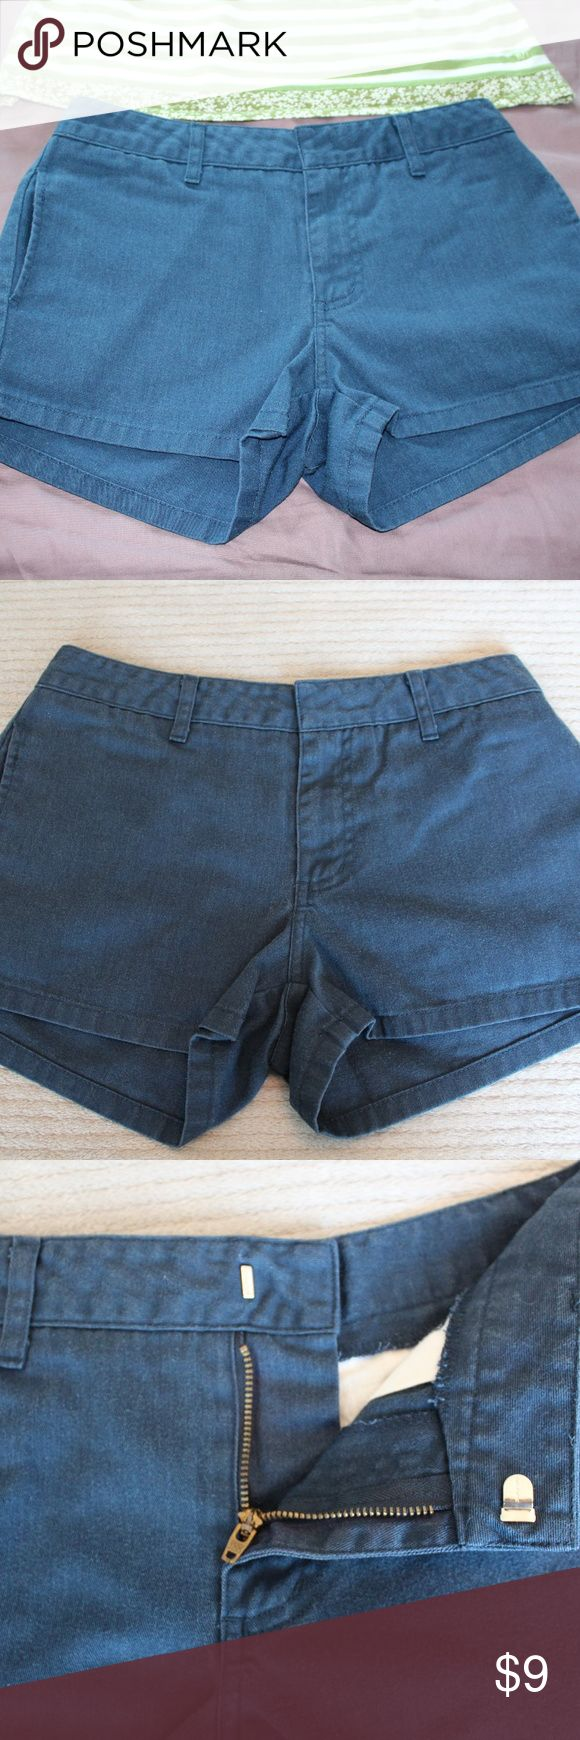 Navy Blue Dickie's Shorts These shorts are perfect for the hot summer days!  They are a navy blue color with a latch instead of a button on front.  Great condition with no stains or pulls! Dickies Shorts